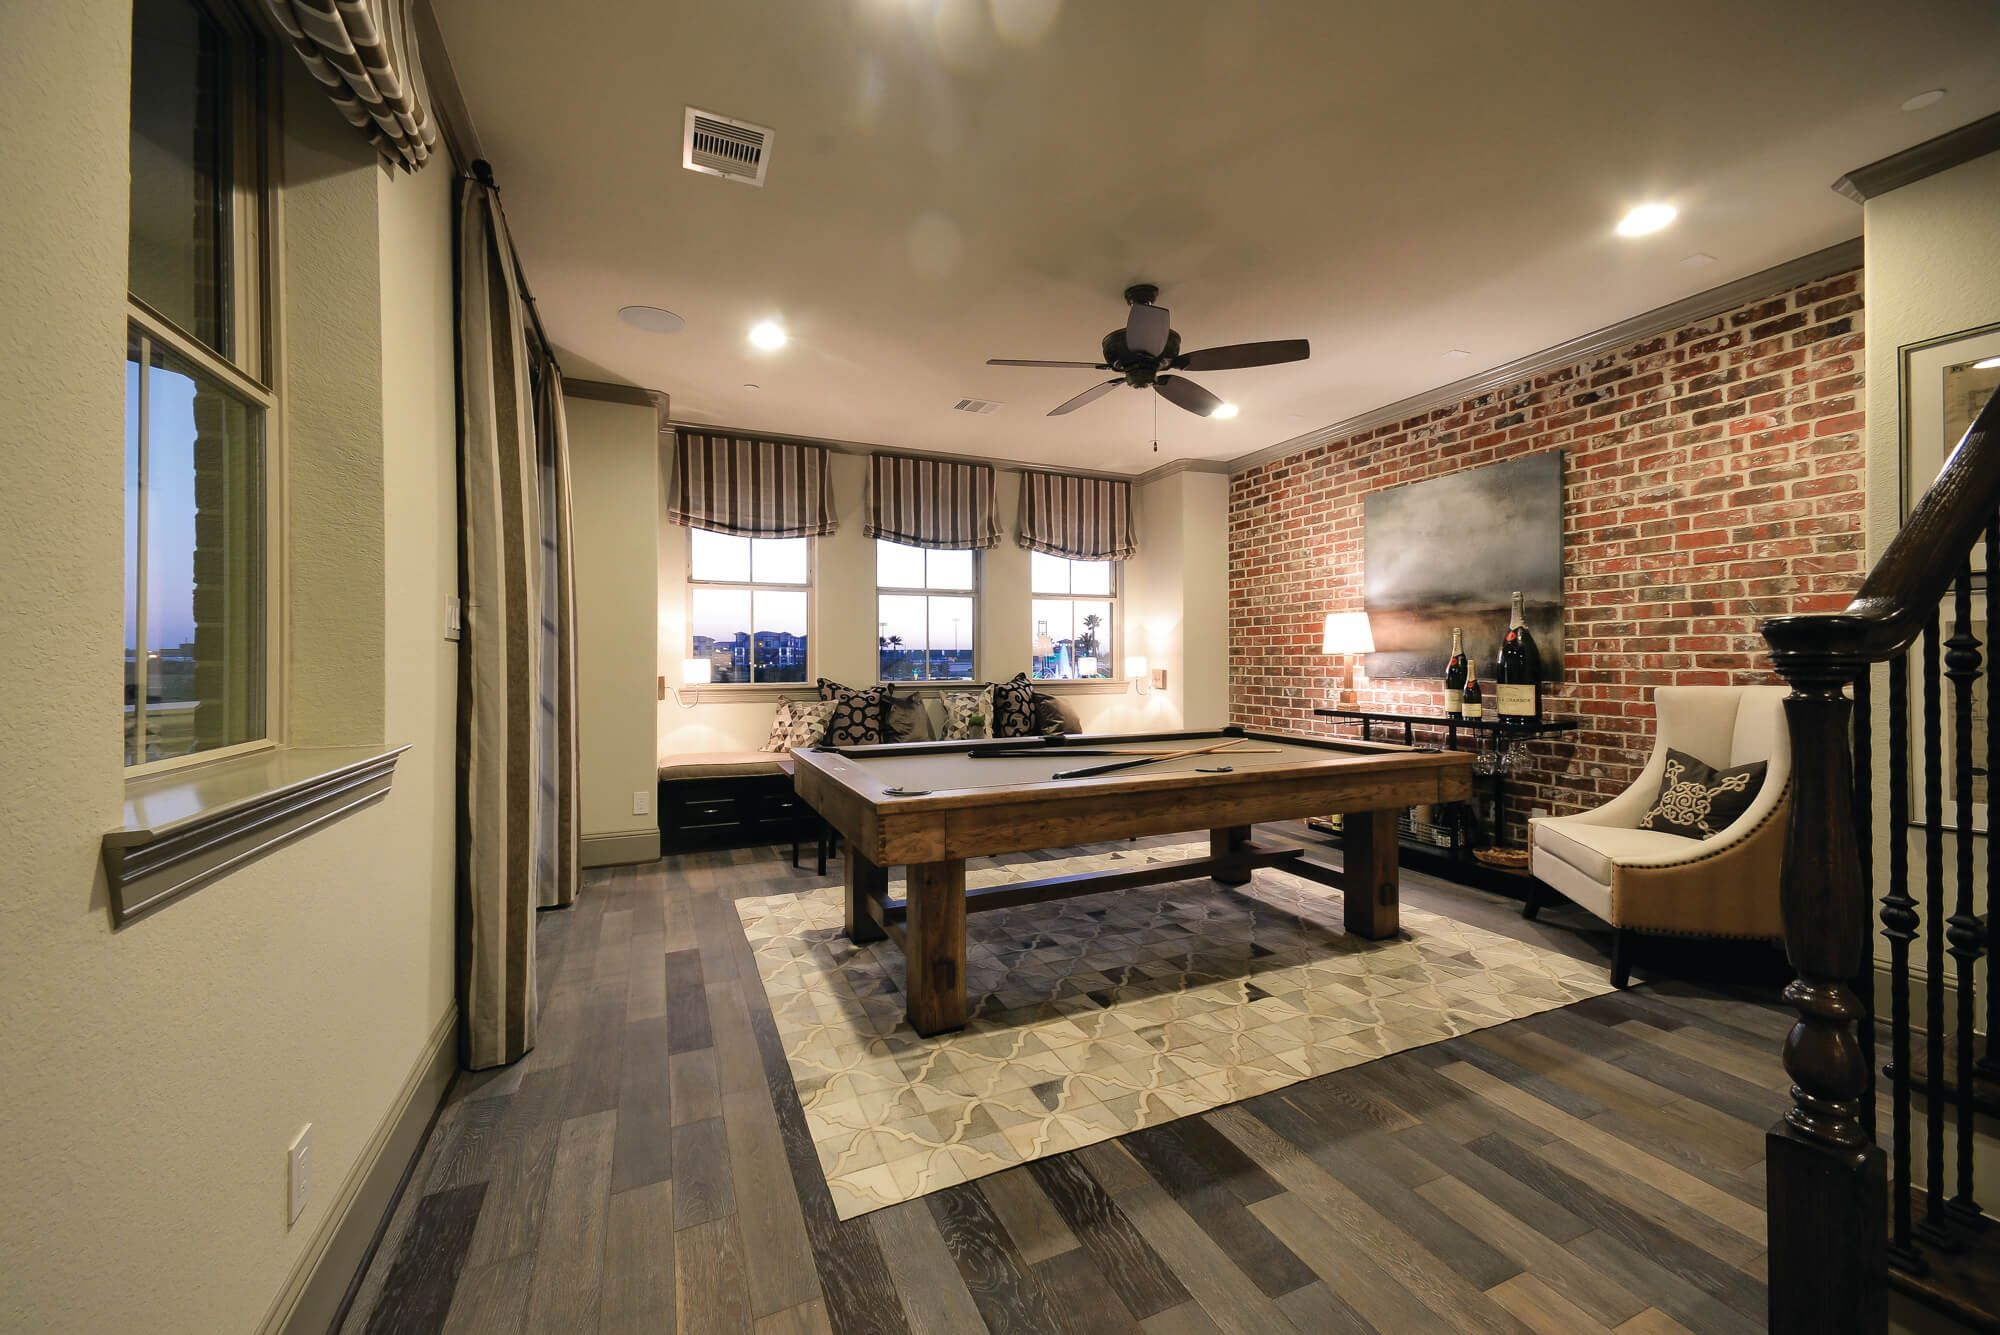 The game room is accented by a brick wall creating a warm touch